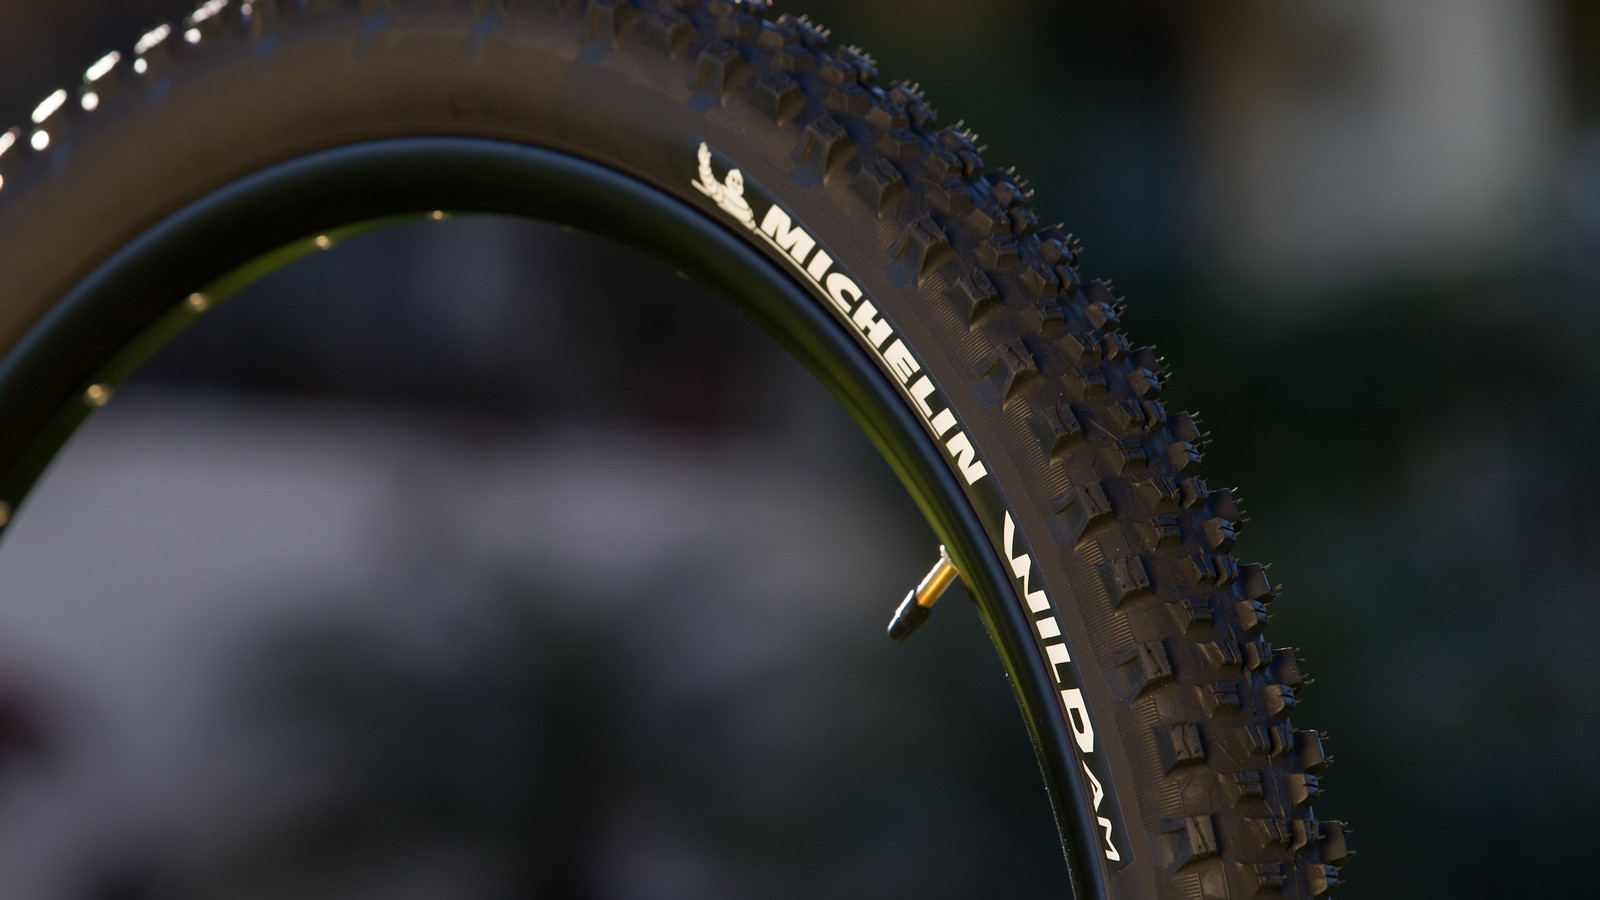 The Wild AM is an enduro ready tire